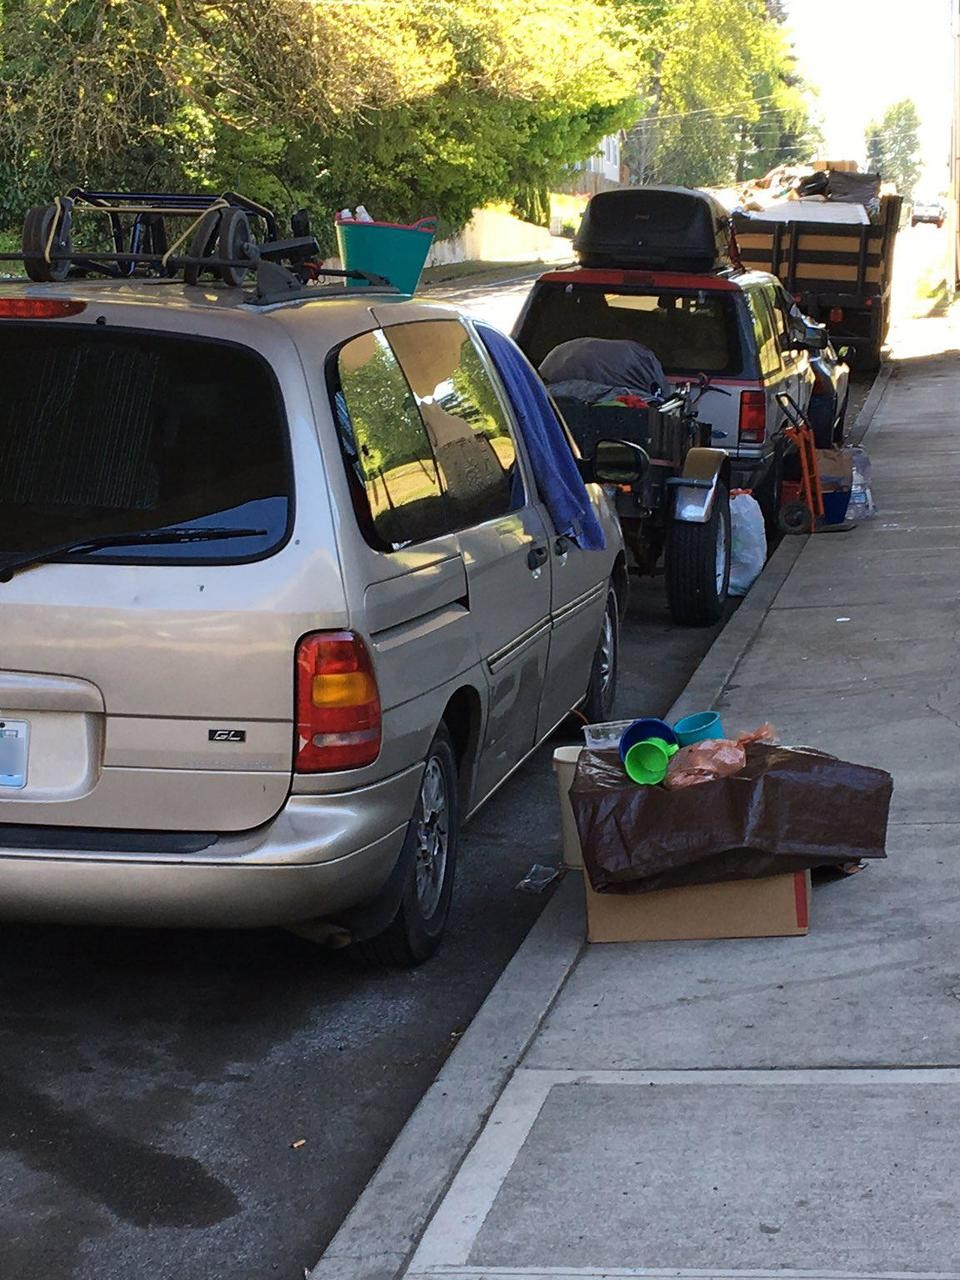 How Do You Report Abandoned Or Occupied Vehicles In Portland Neighborhoods Katu